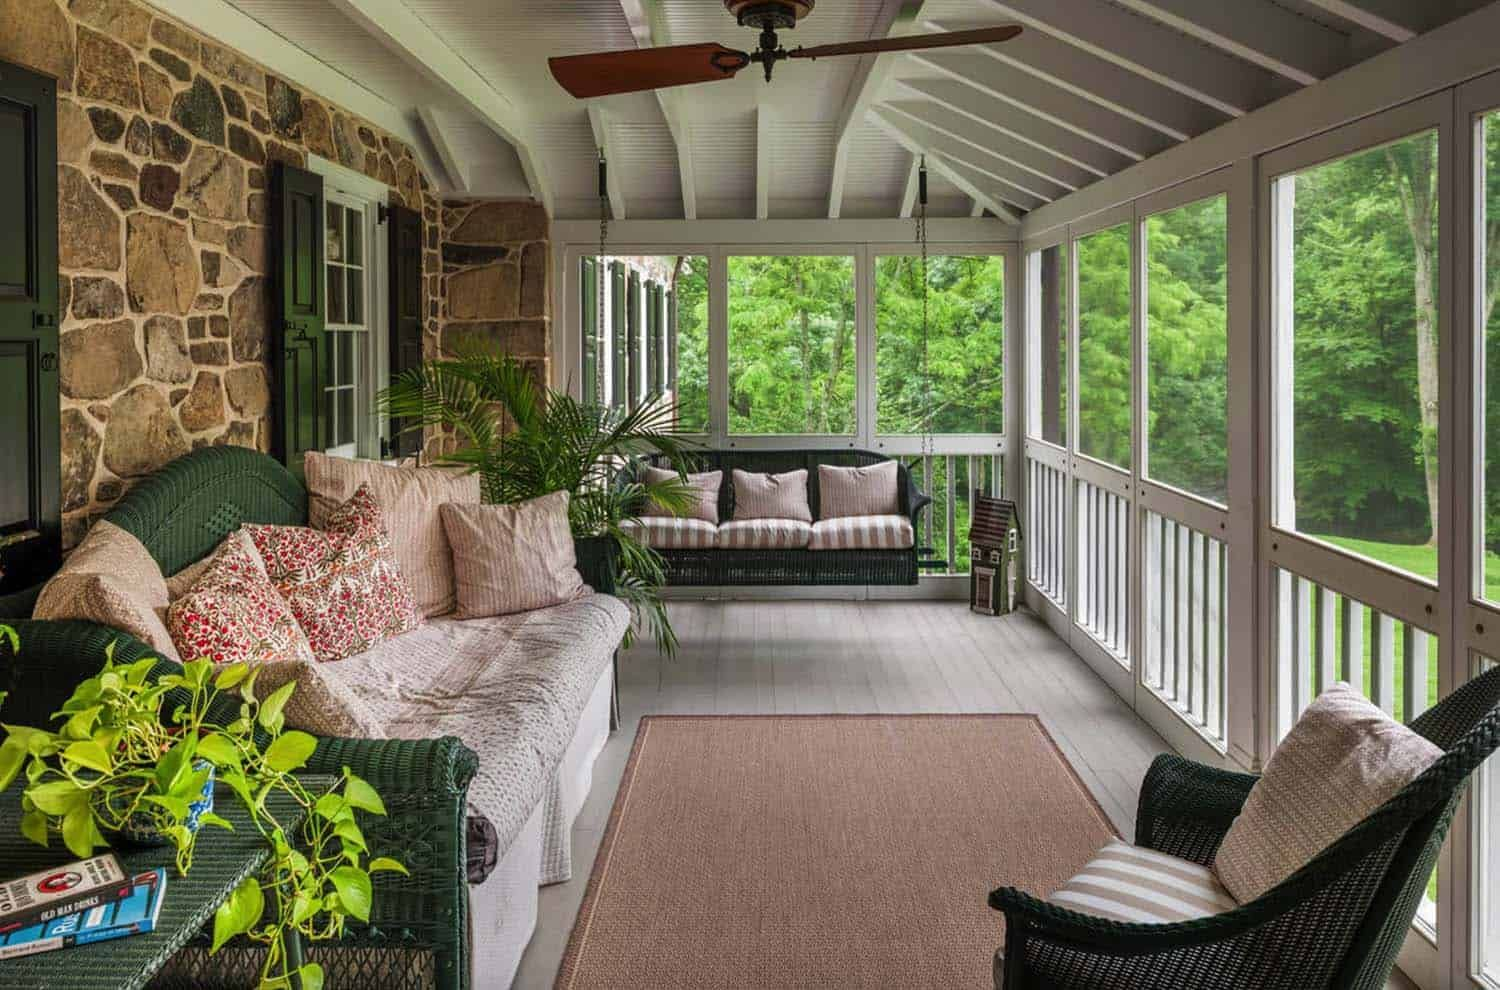 28 Beautiful Screened In Porch Ideas That You Will Love In 2020 Porch Design Mobile Home Porch Screened Porch Designs